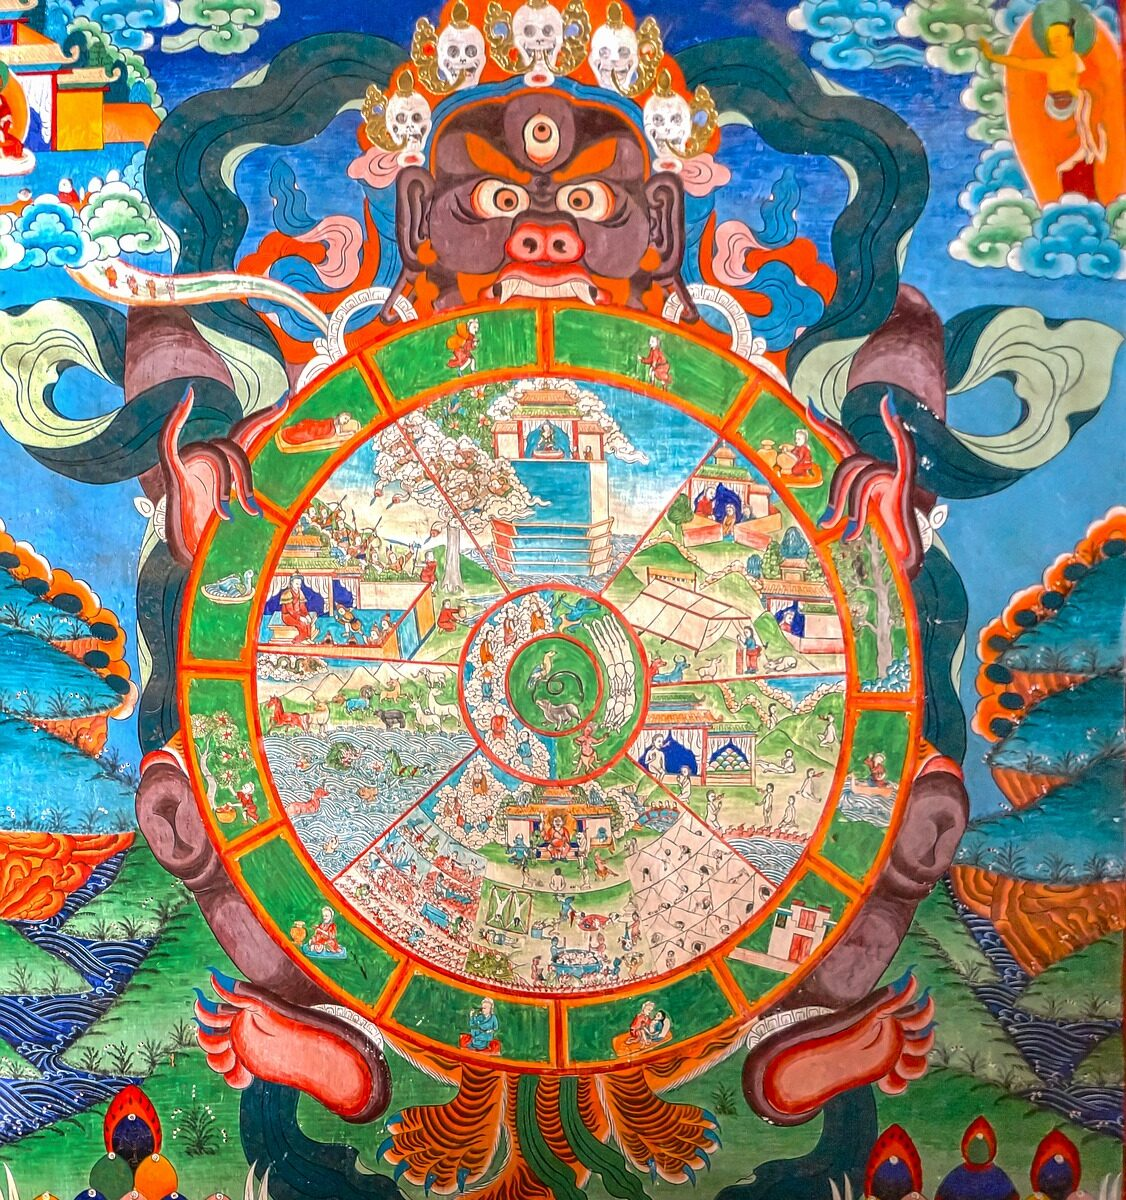 Traditional Image of the Buddhist Wheel of Life